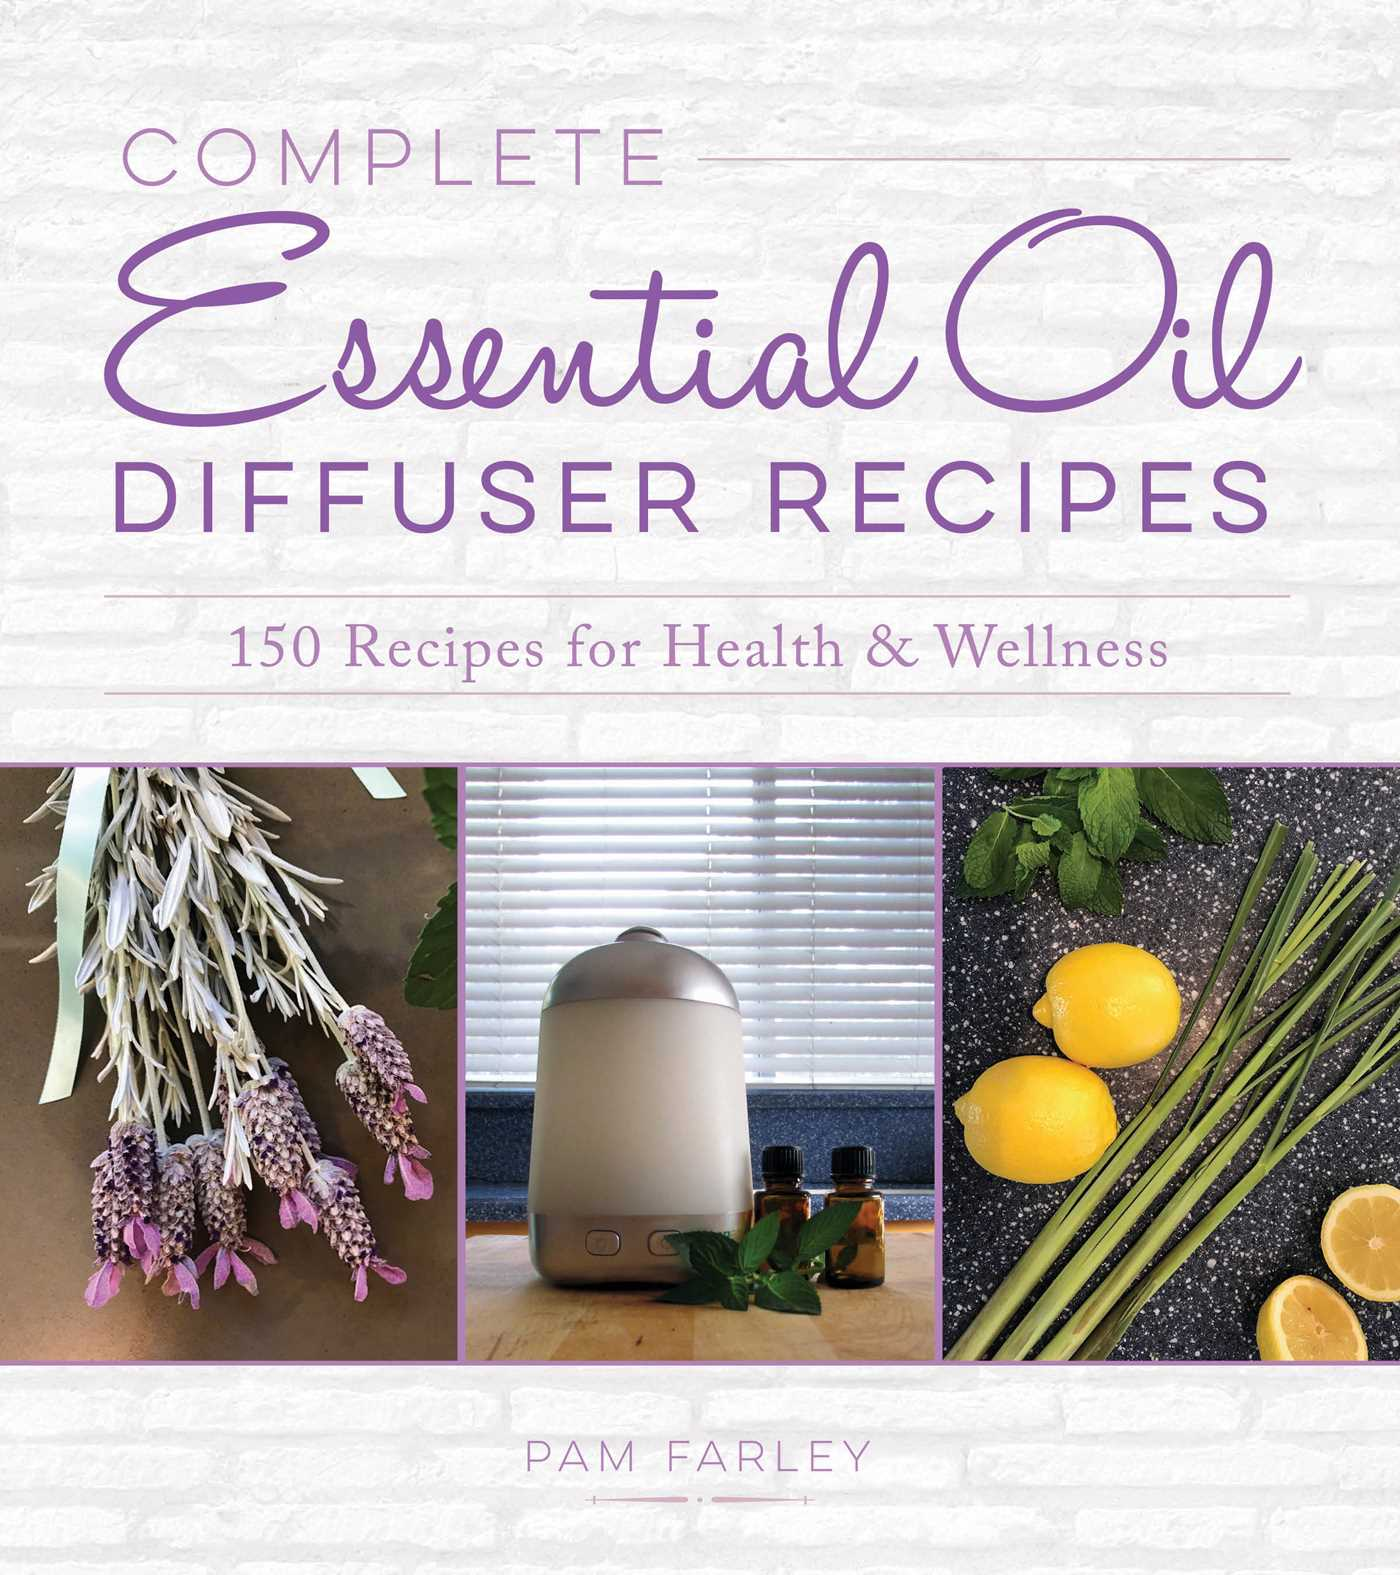 Complete Essential Oil Diffuser Recipes Book By Pam Farley Official Publisher Page Simon Schuster